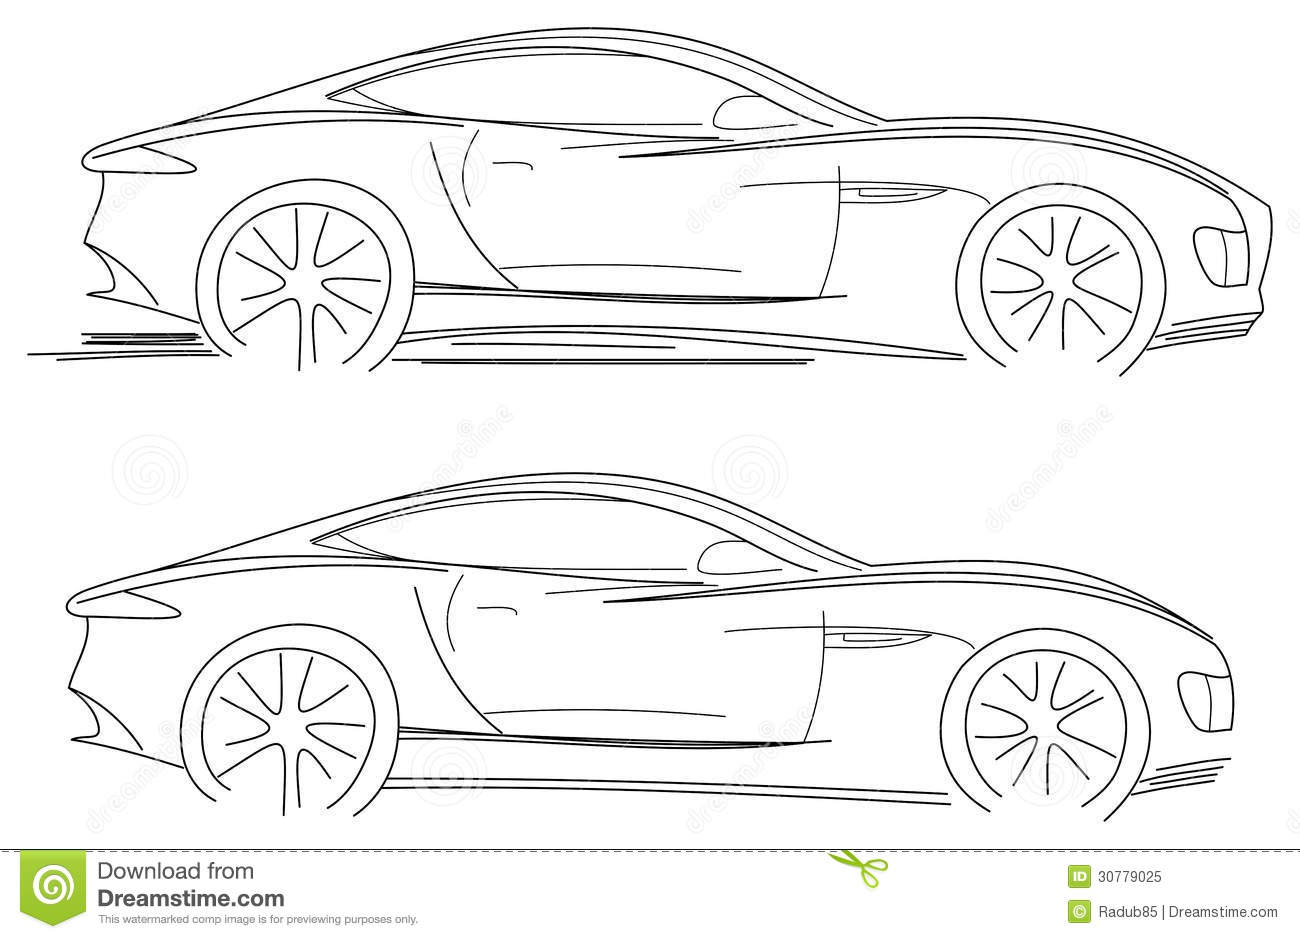 Dodge Challenger 2008 together with Lexus Logo Vector also Watch likewise Infiniti Logo besides Bugatti Veyron Super Car Coloring Page. on ford concept cars